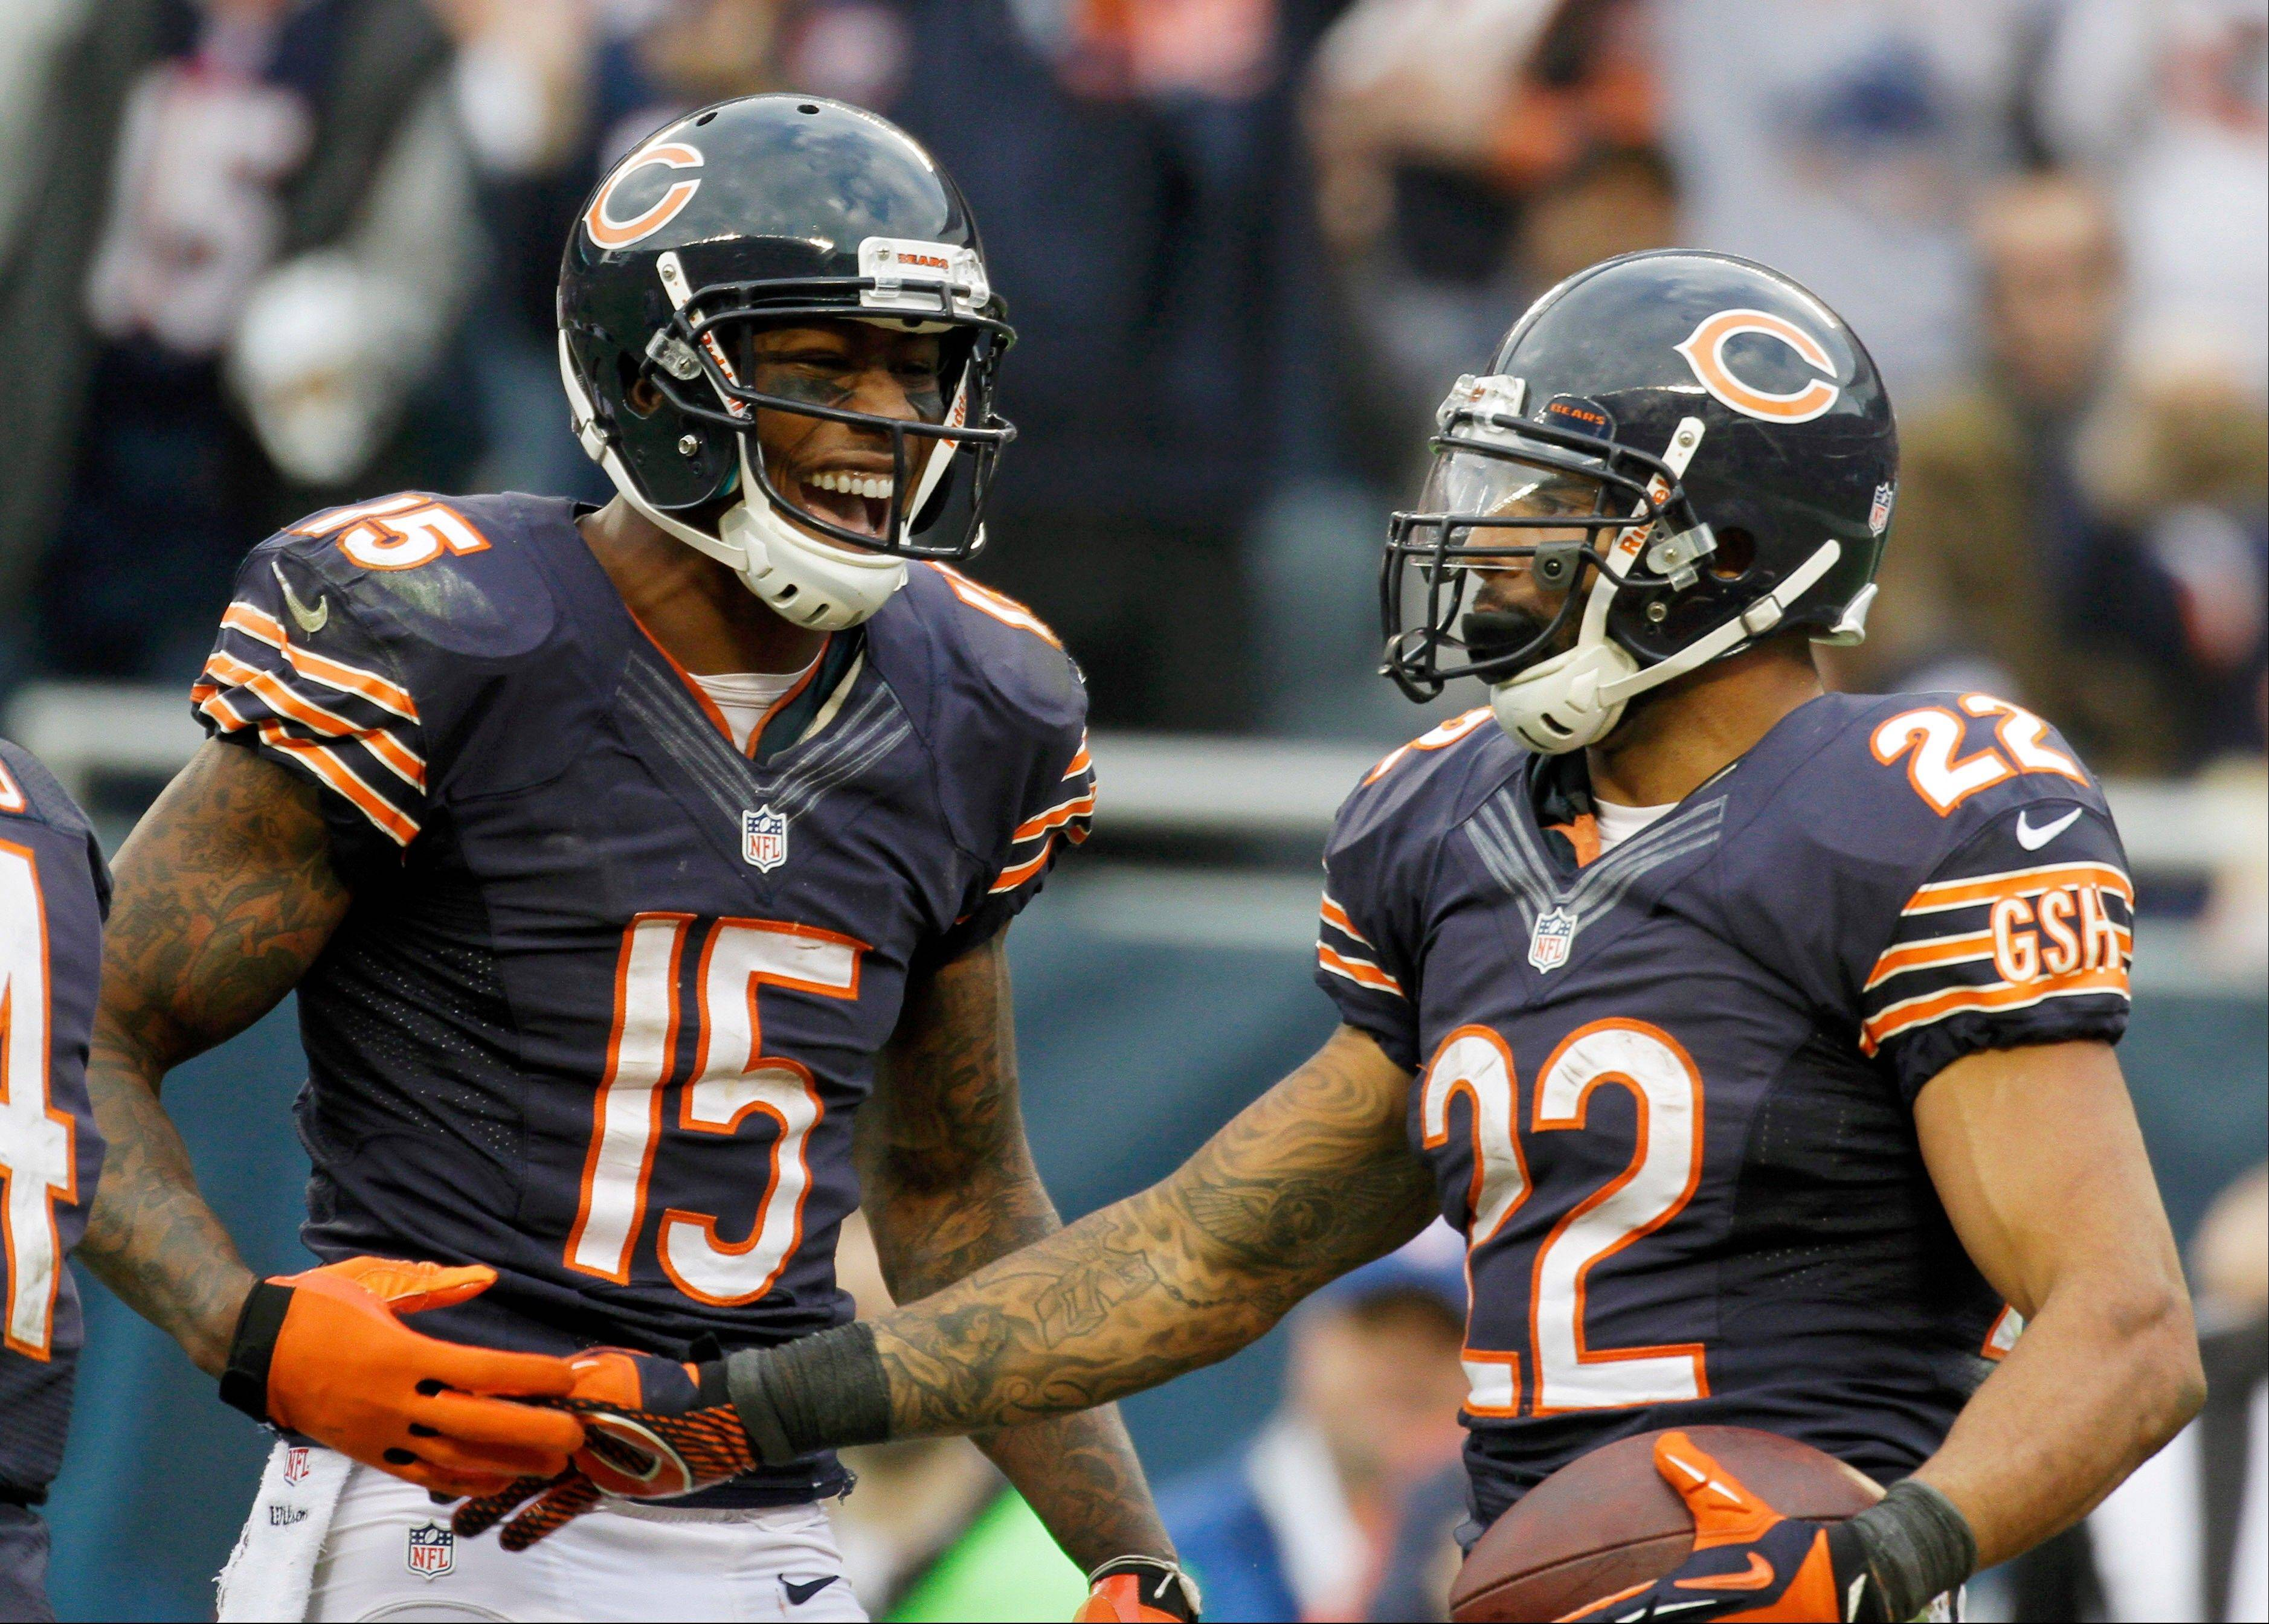 Matt Forte (22) celebrates his touchdown reception with teammate Brandon Marshall (15) in the second half of an NFL football game against the Seattle Seahawks in Chicago, Sunday, Dec. 2, 2012.